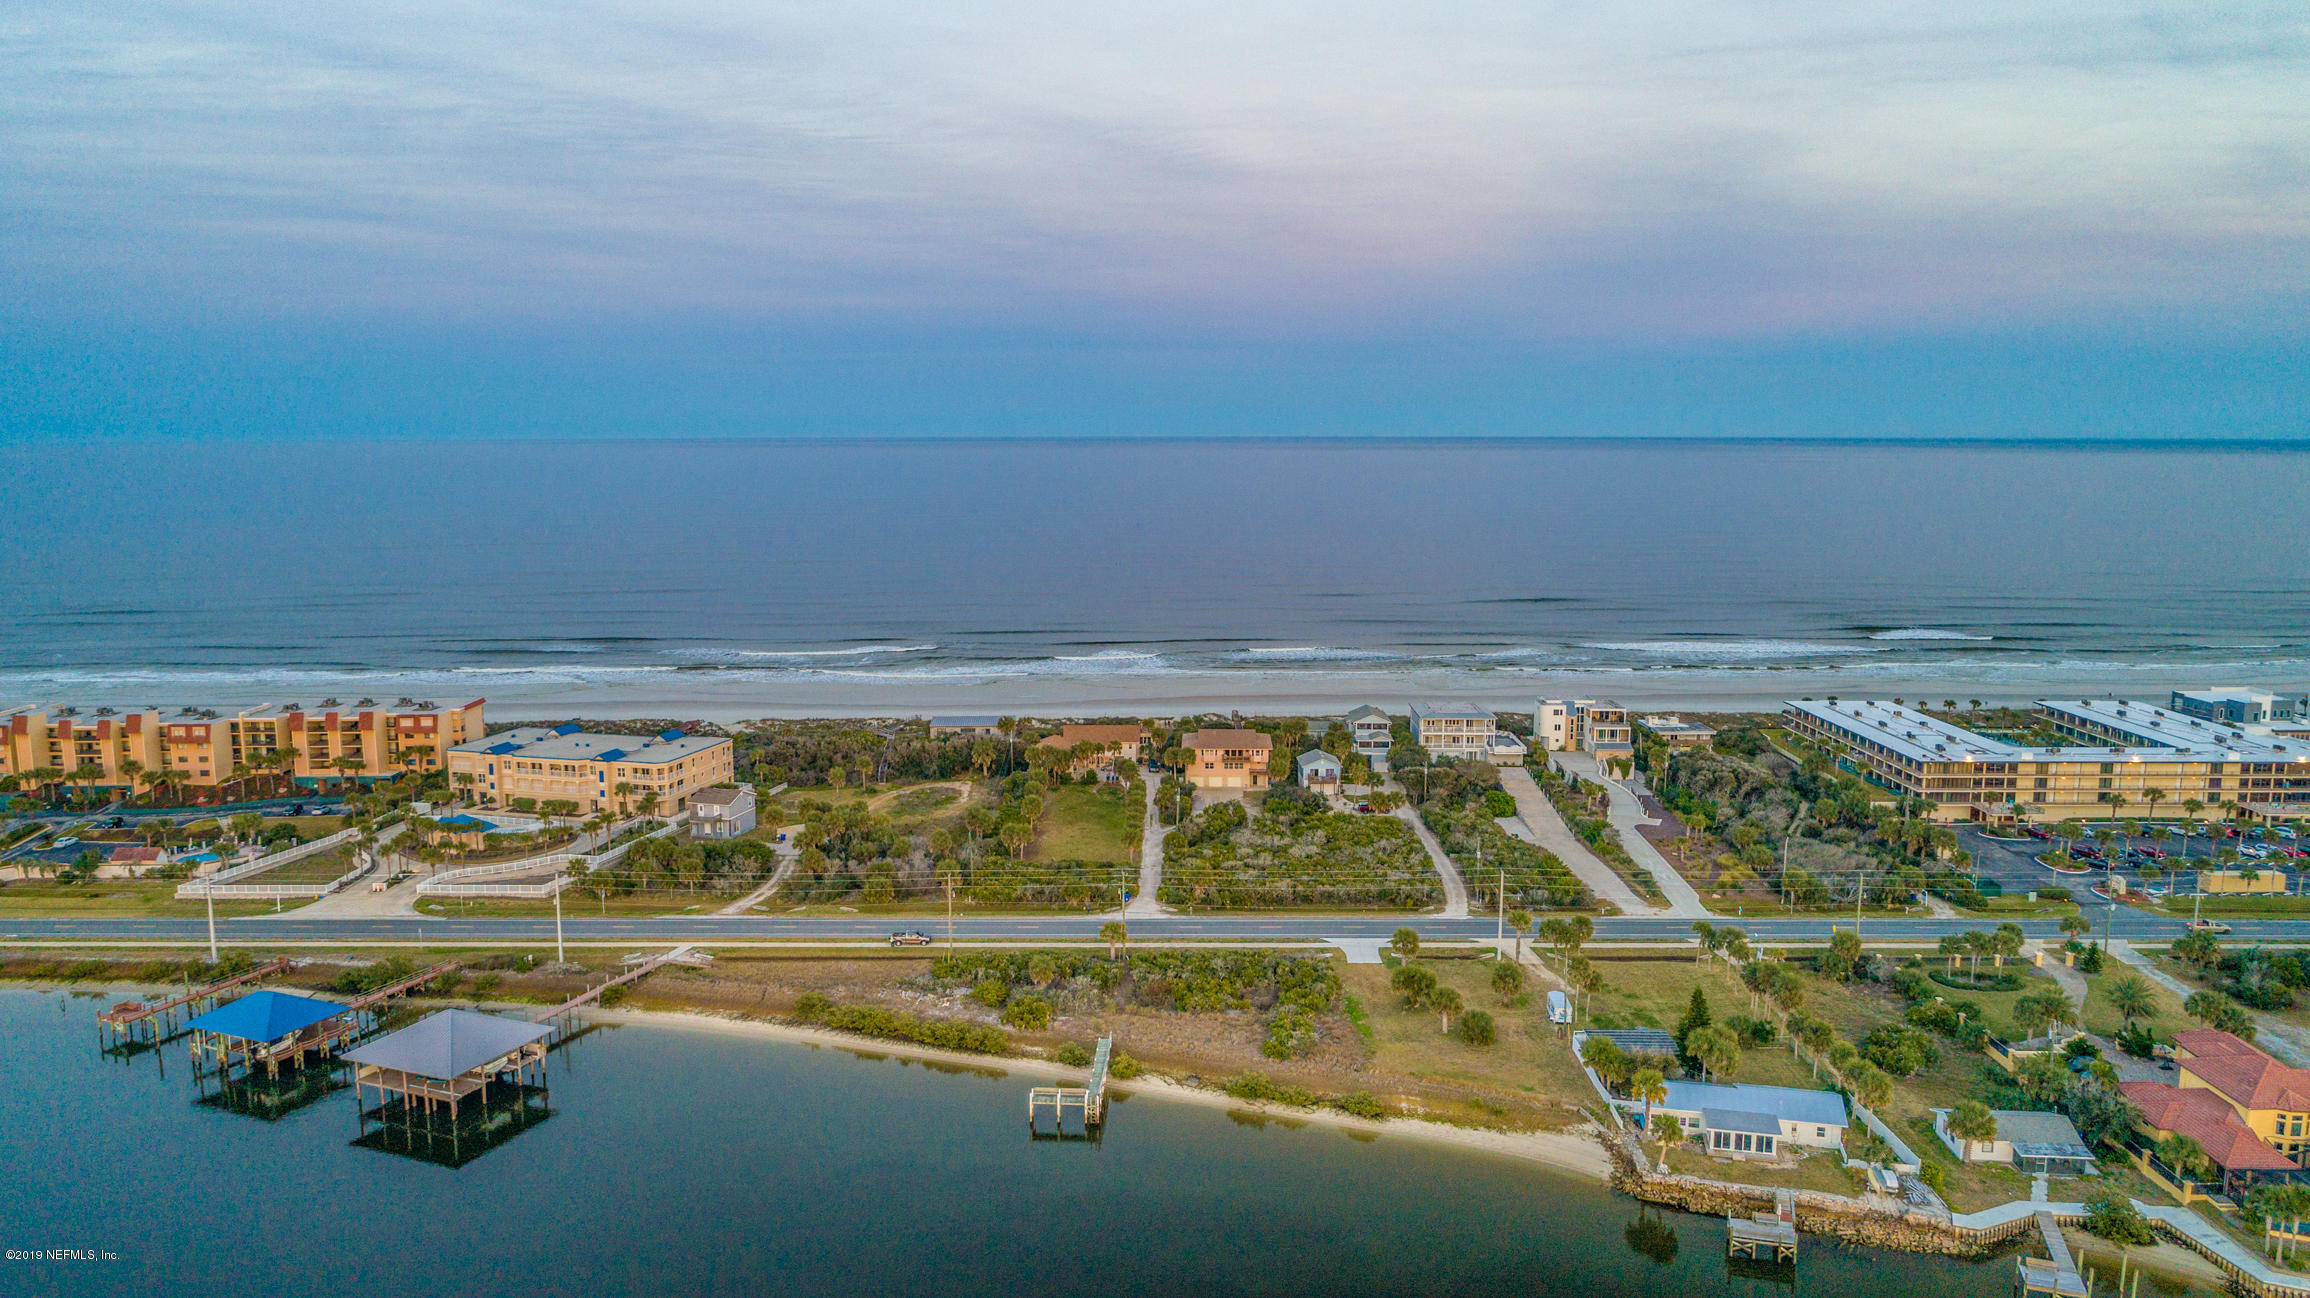 7830 A1A, ST AUGUSTINE, FLORIDA 32080, 4 Bedrooms Bedrooms, ,5 BathroomsBathrooms,Residential,For sale,A1A,1047180